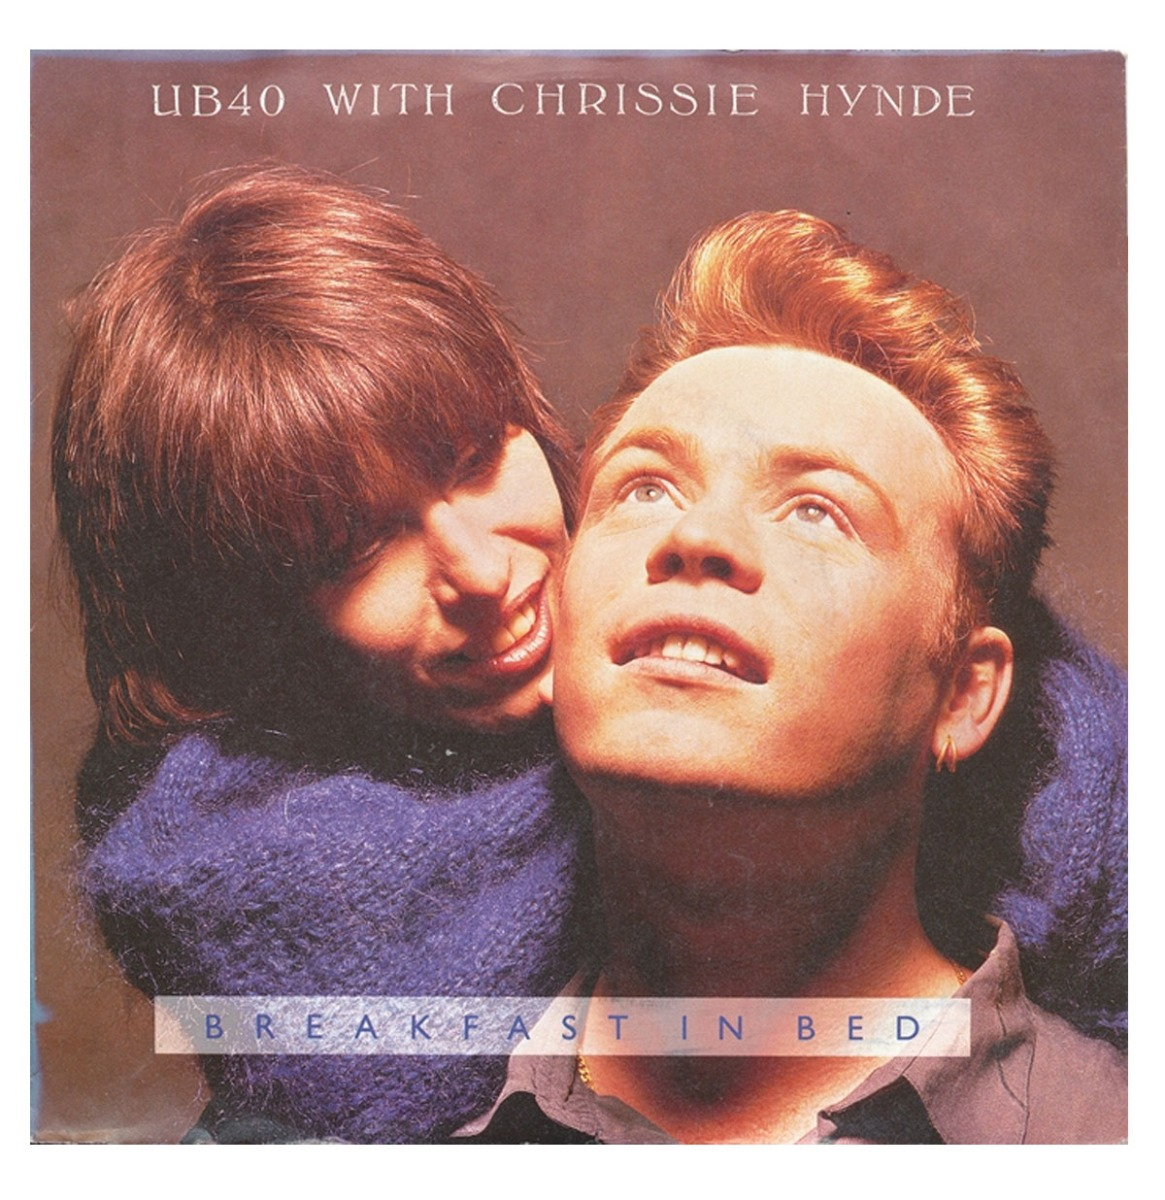 Single: UB40 With Chrissie Hynde - Breakfast In Bed / Breakfast In Bed (New Old Stock)